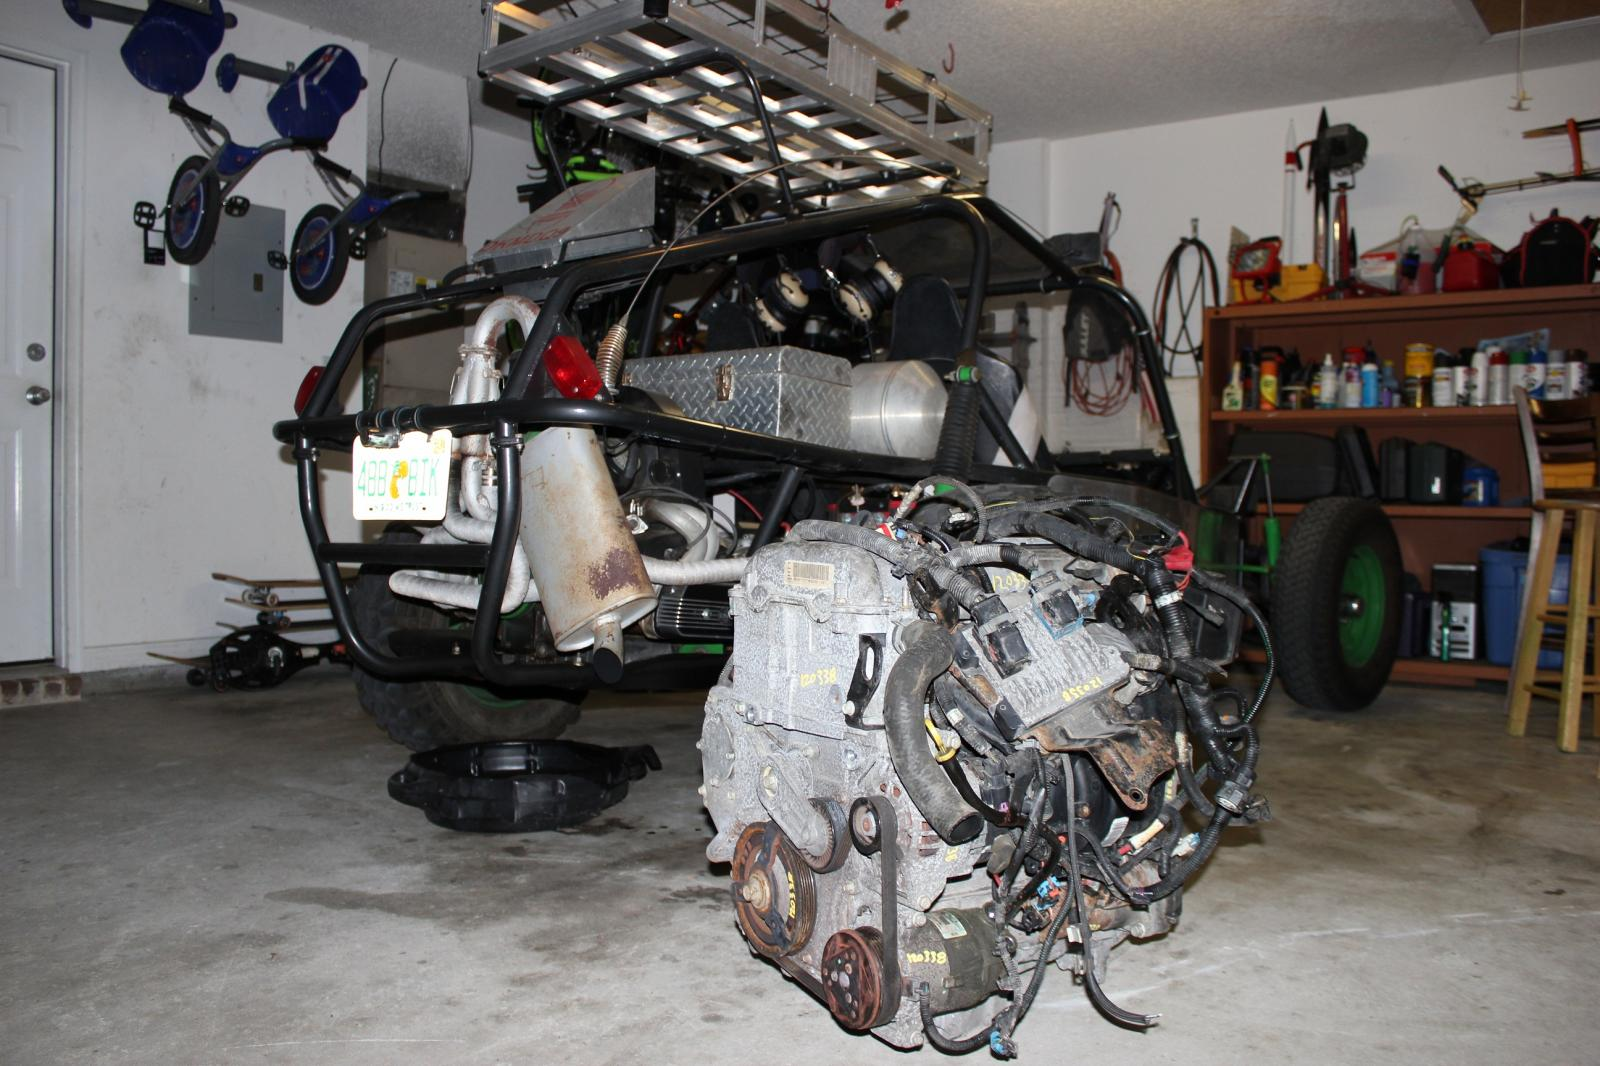 Hbb Off Road View Topic Craigs Sandrail Rebuild Com Offroad Tail Light Wiring Help Click Image To Fullscreen